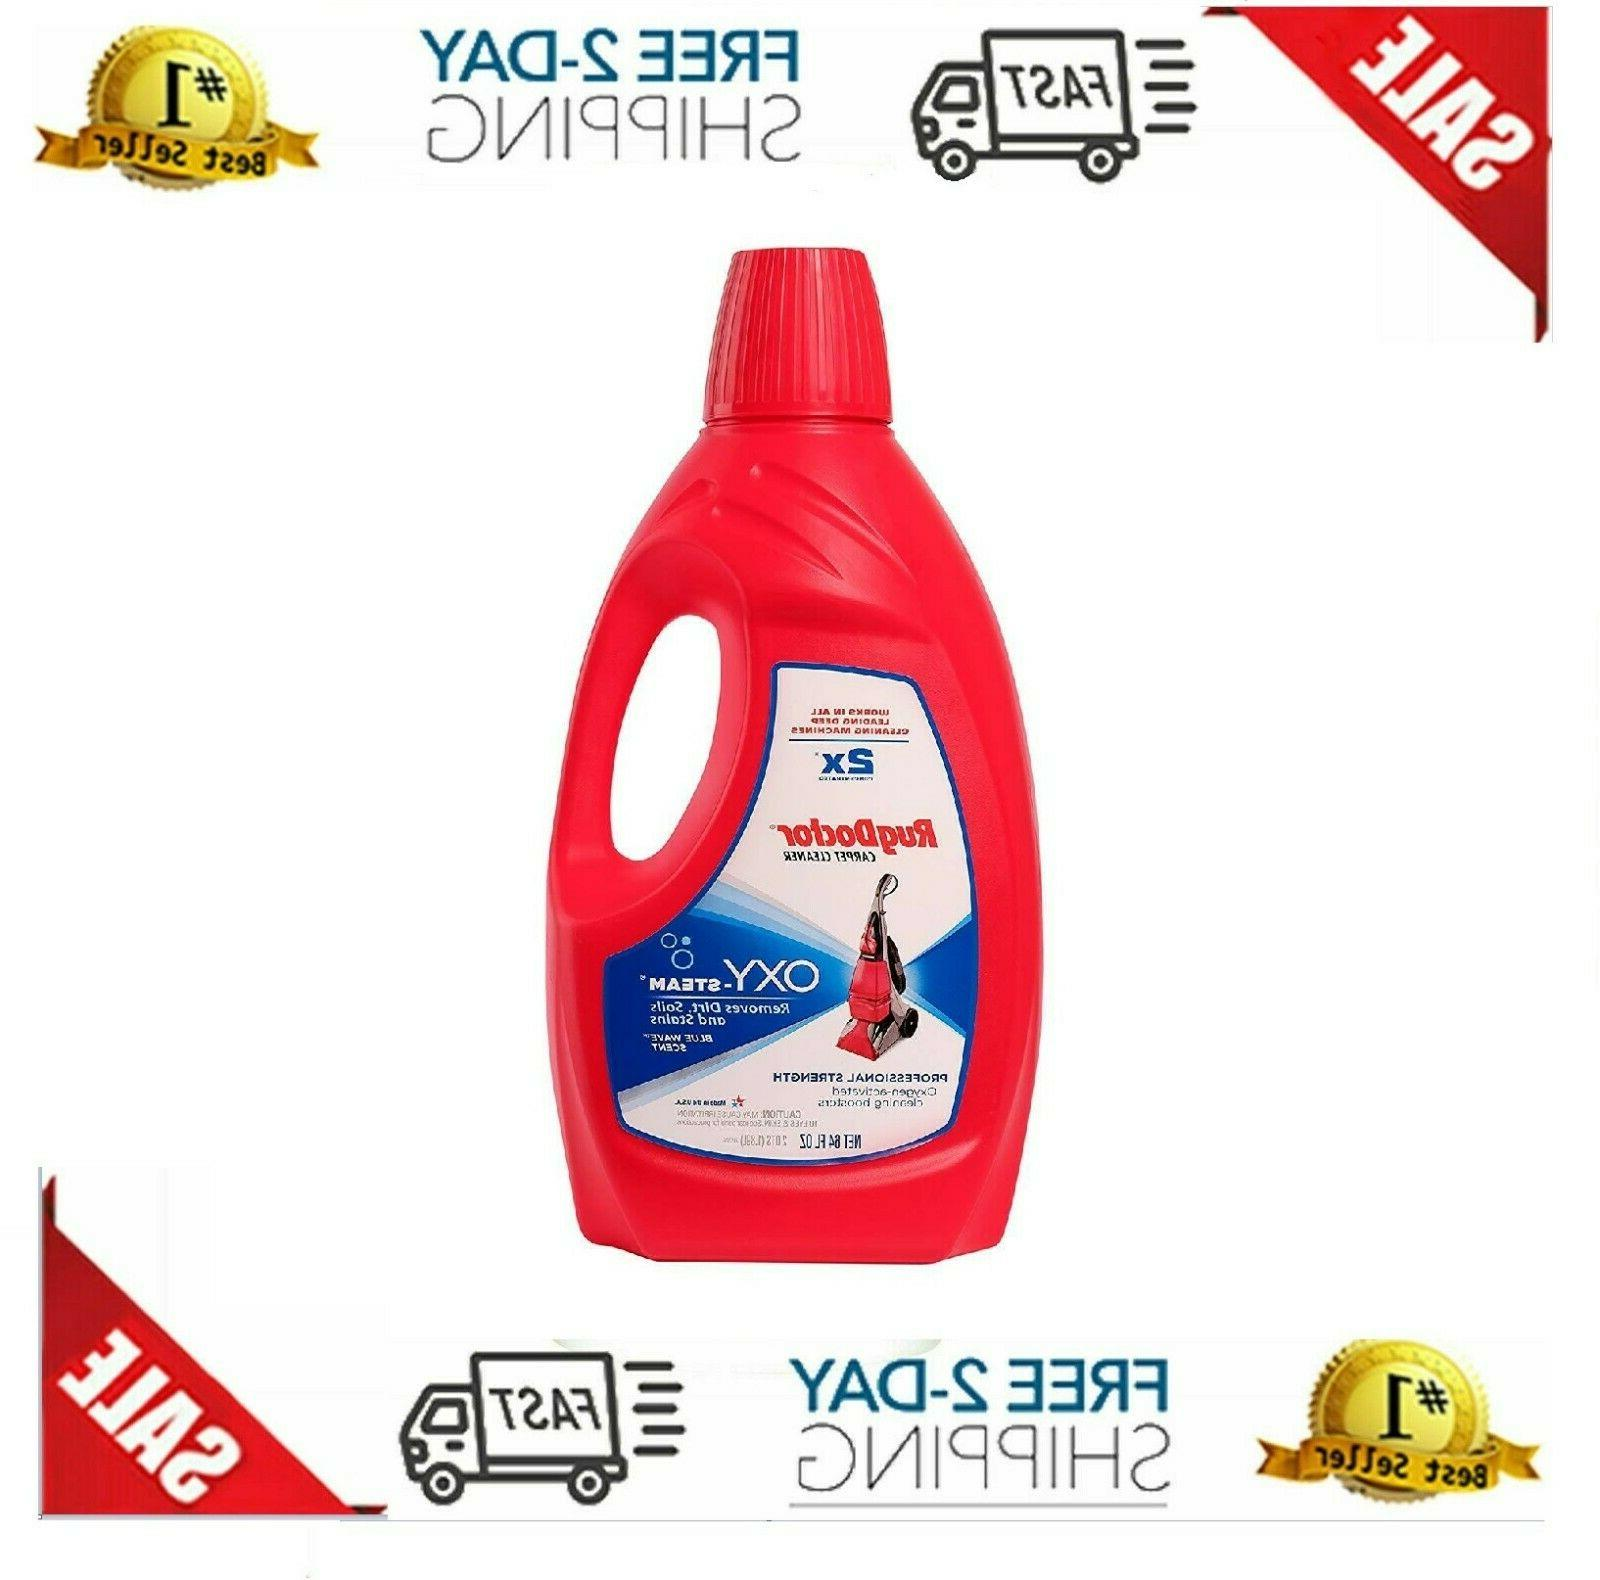 rug doctor oxy steam cleaning solution removes